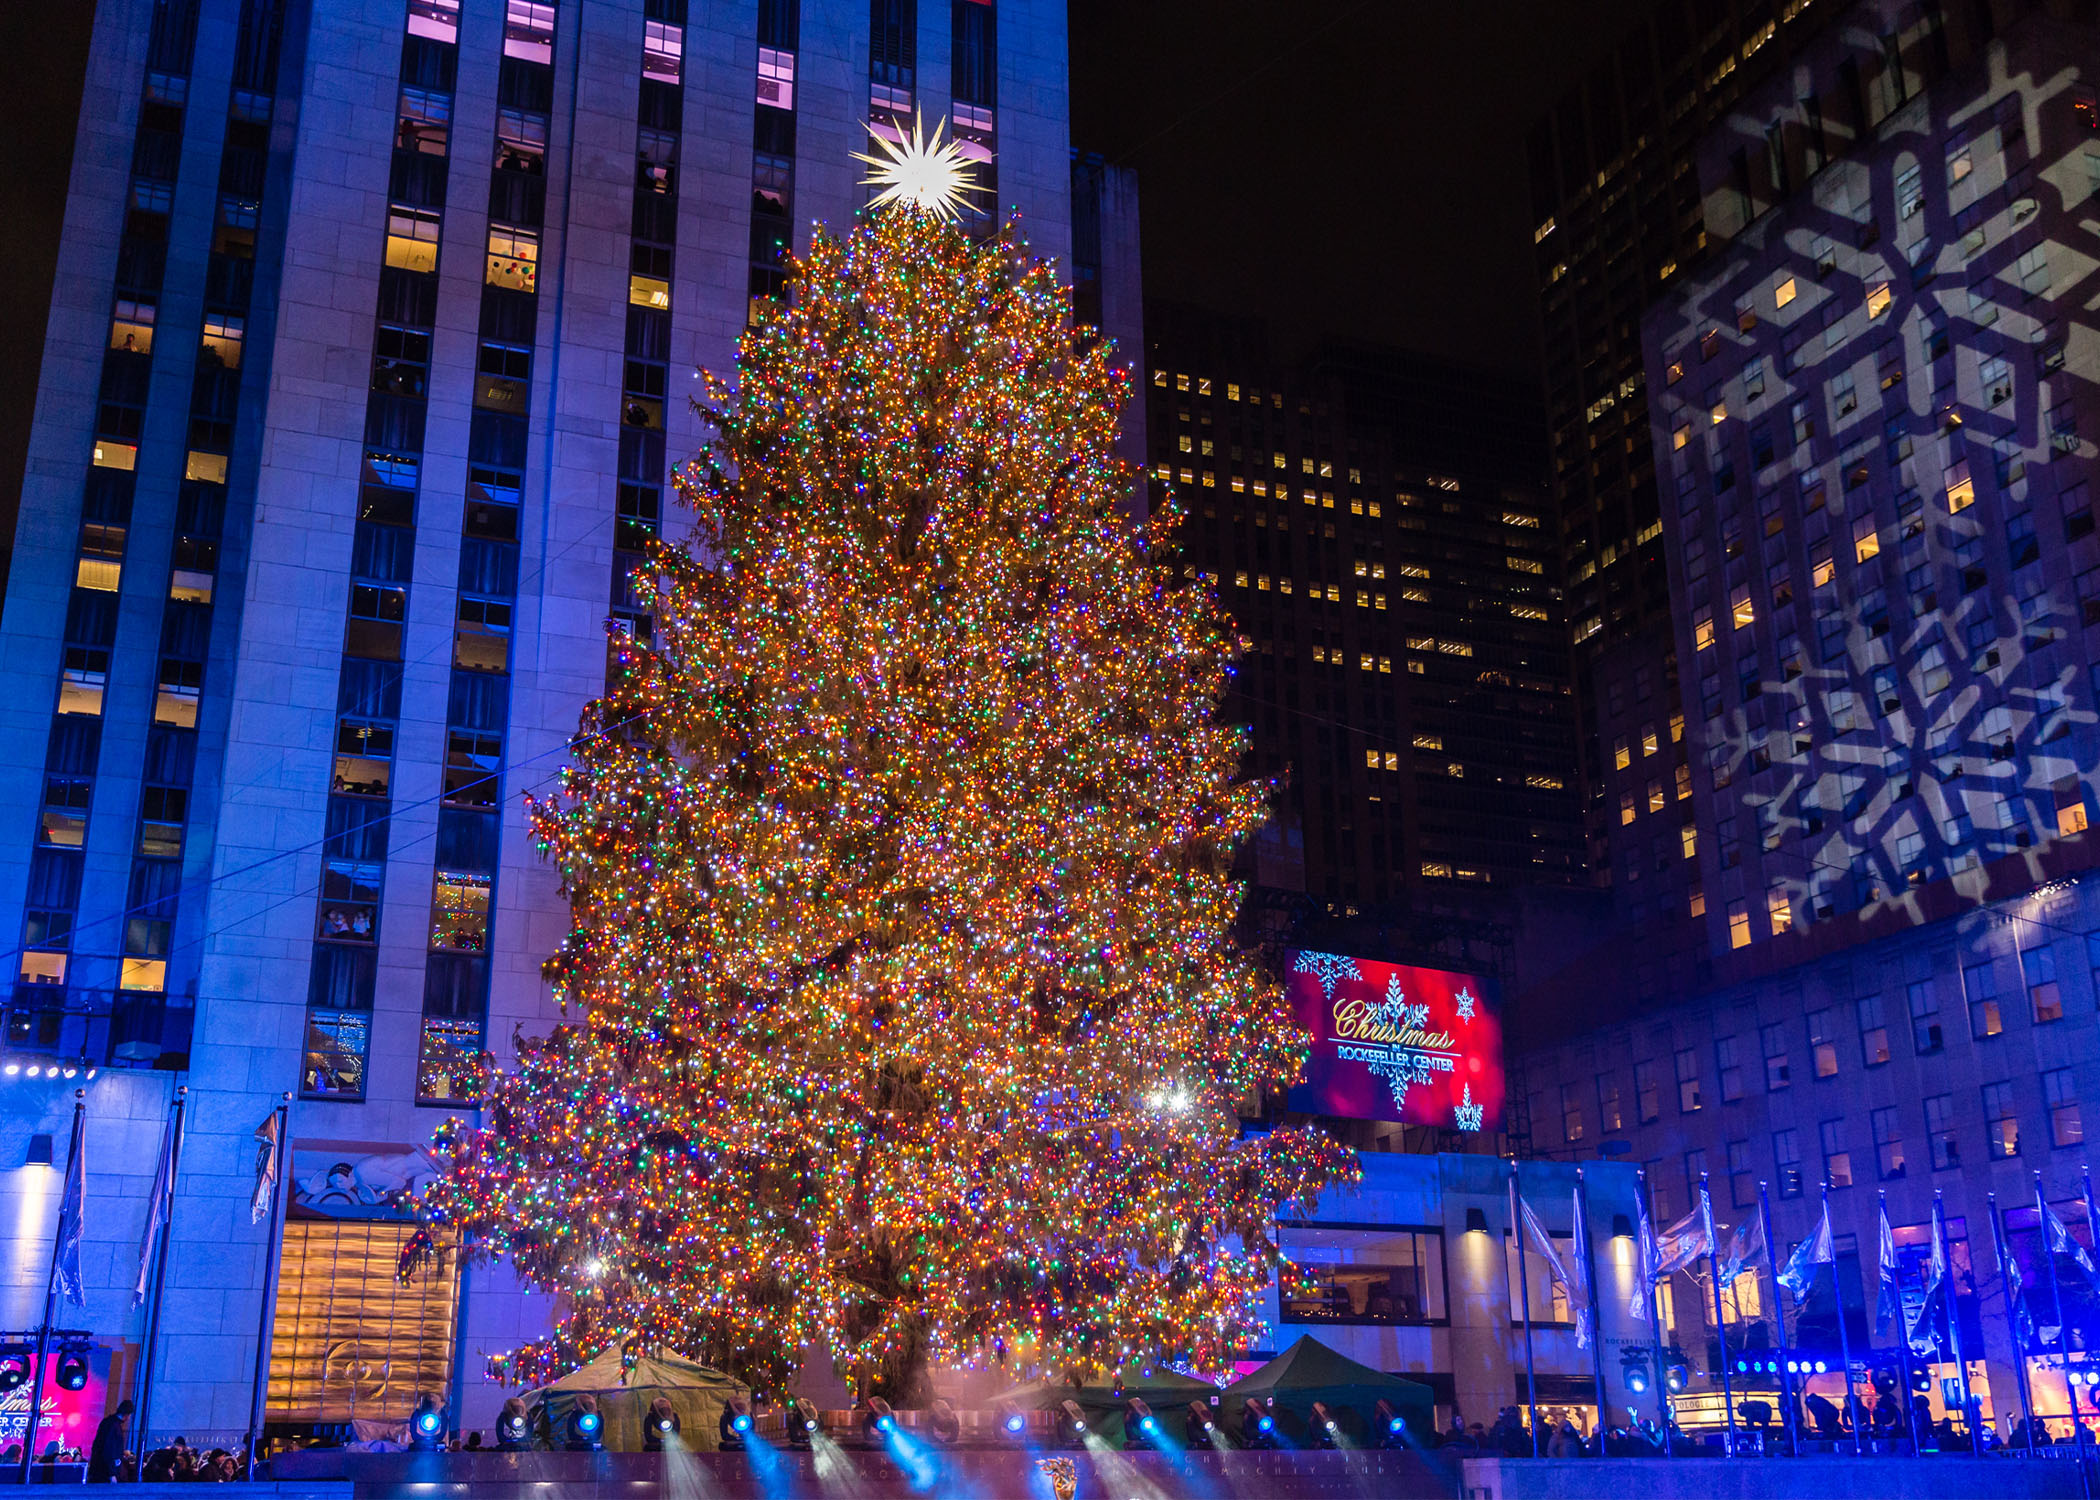 Rockefeller Center Christmas tree to return, possibly without crowds